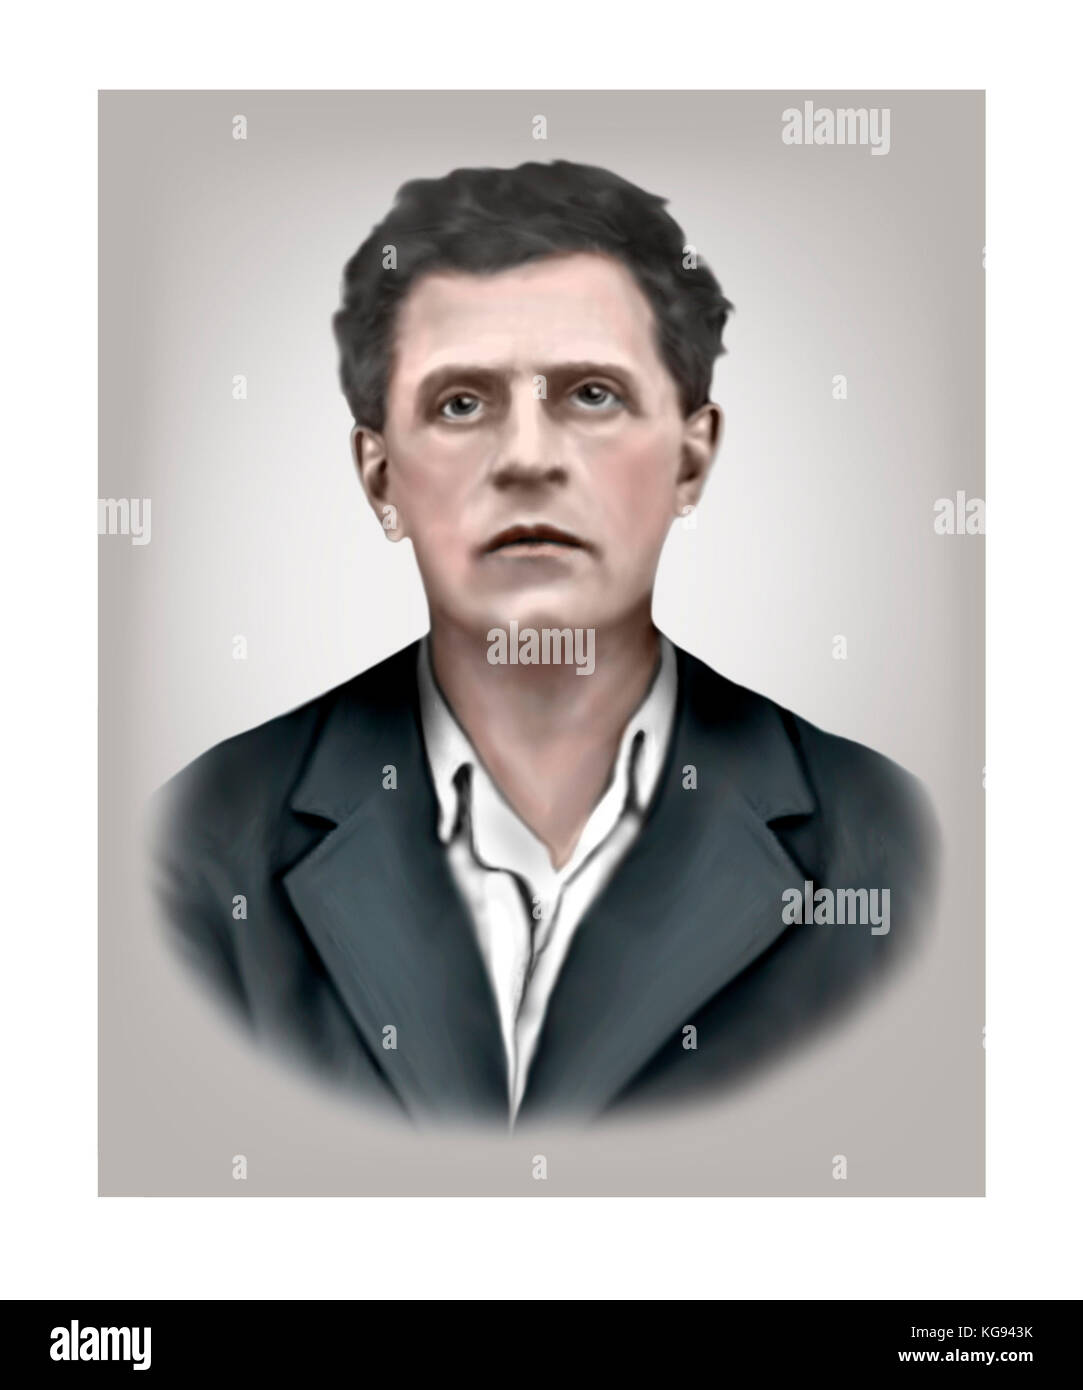 Jacques schell photographe synthesis of all pictures from www - Ludwig Wittgenstein 1889 1951 Austrian British Philosopher Stock Image